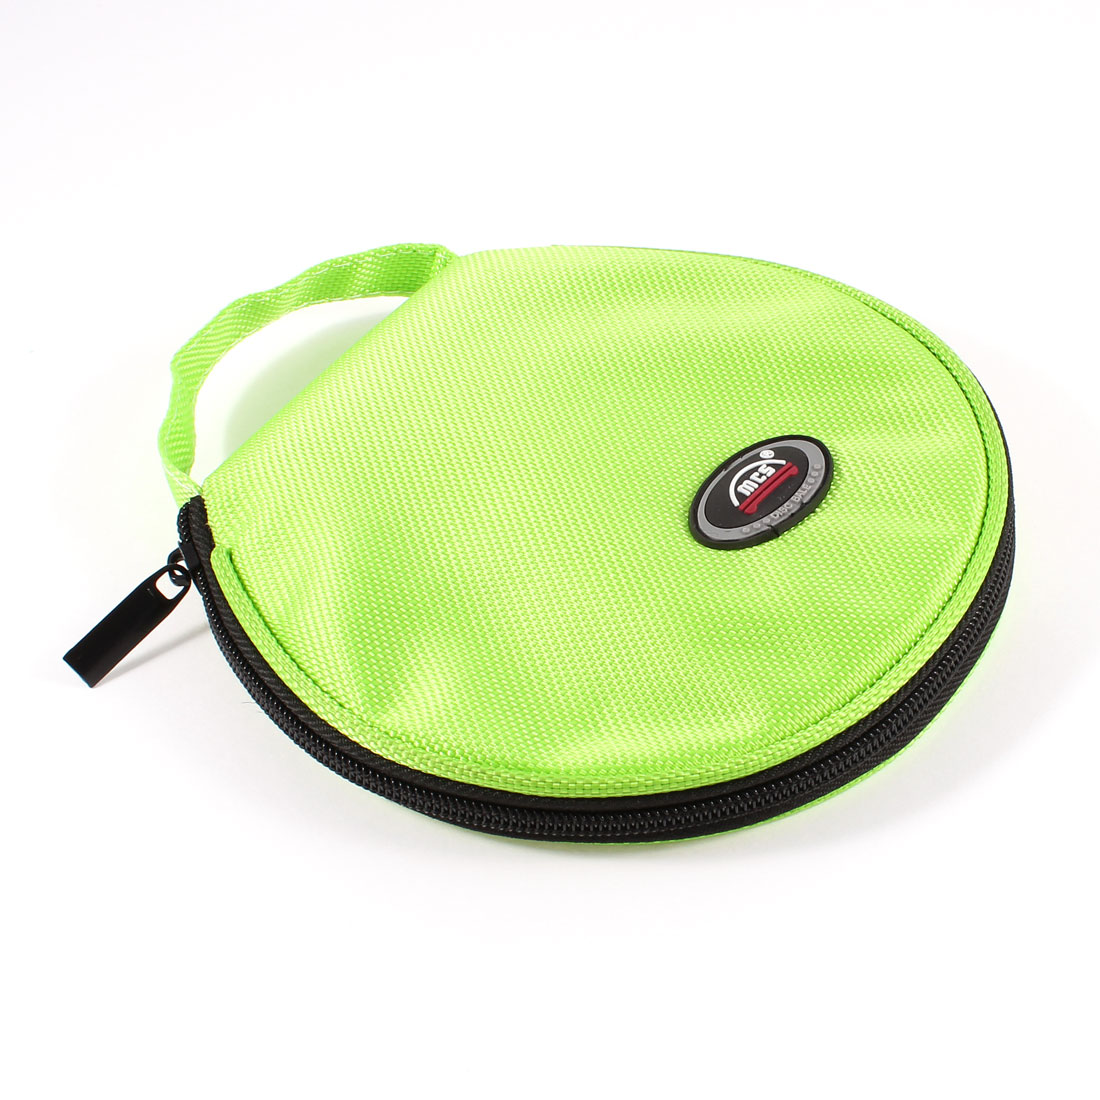 Zip up 20pcs CD Discs Nylon Rounded Bag Storage Container Lime Green for Car